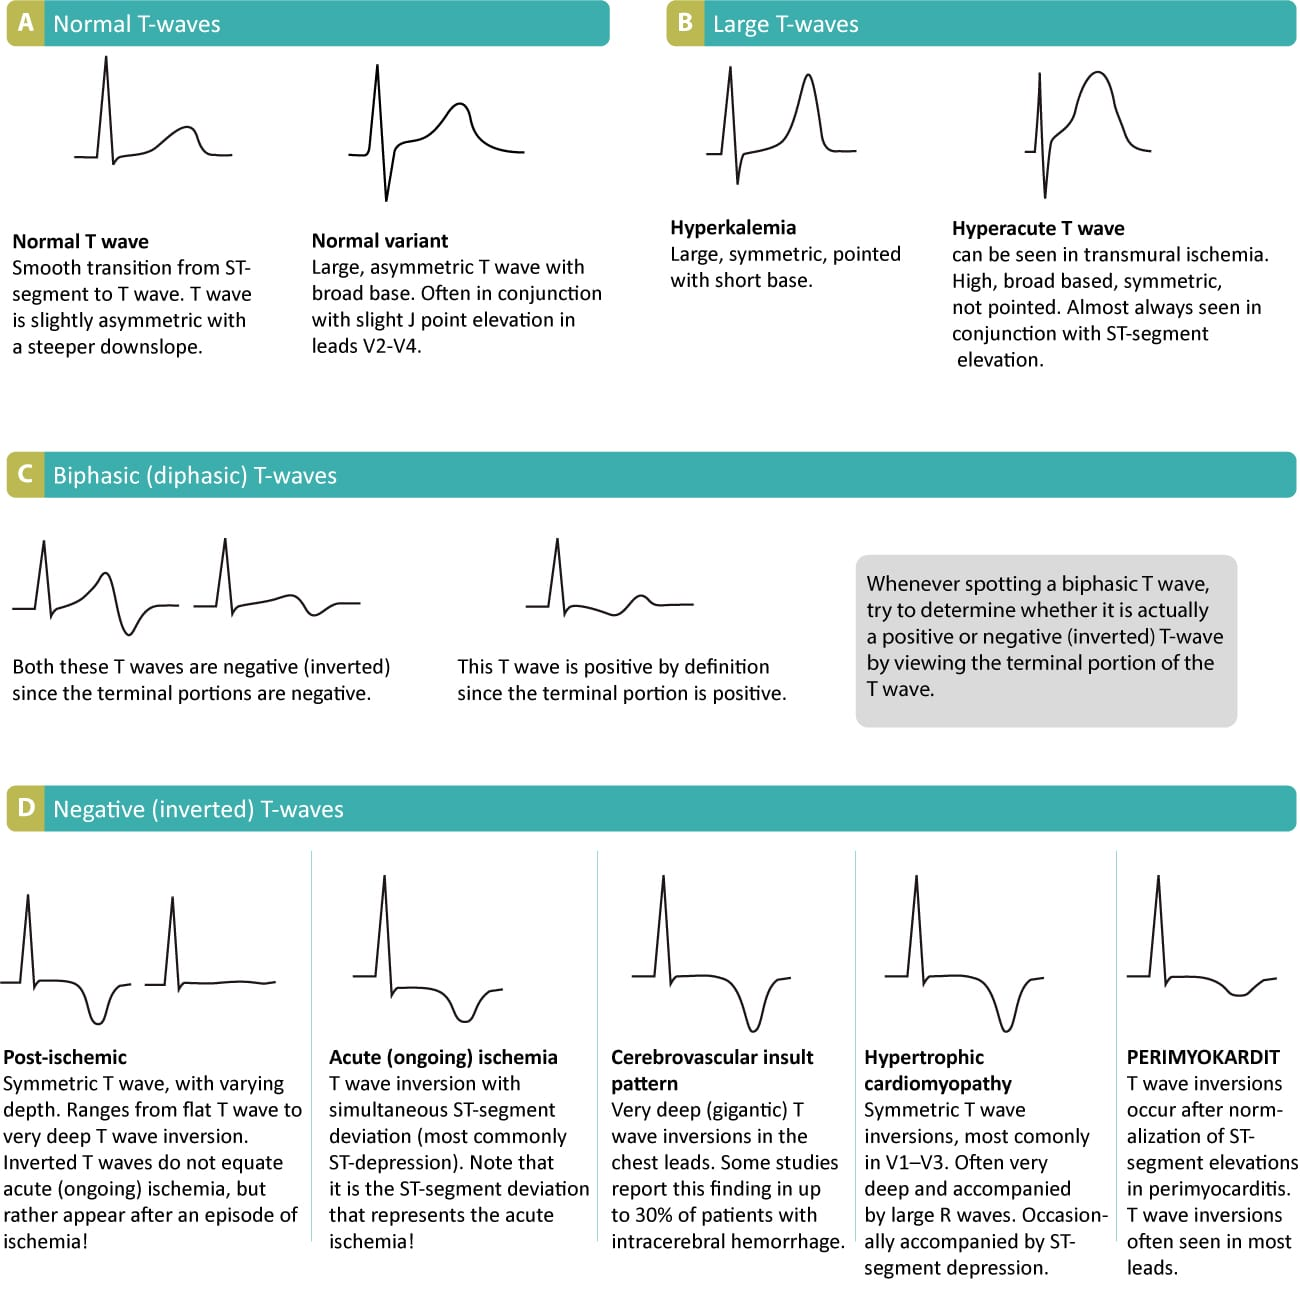 T-waves in ischemia: hyperacute, inversions (negative), Wellens sign & de Winters sign